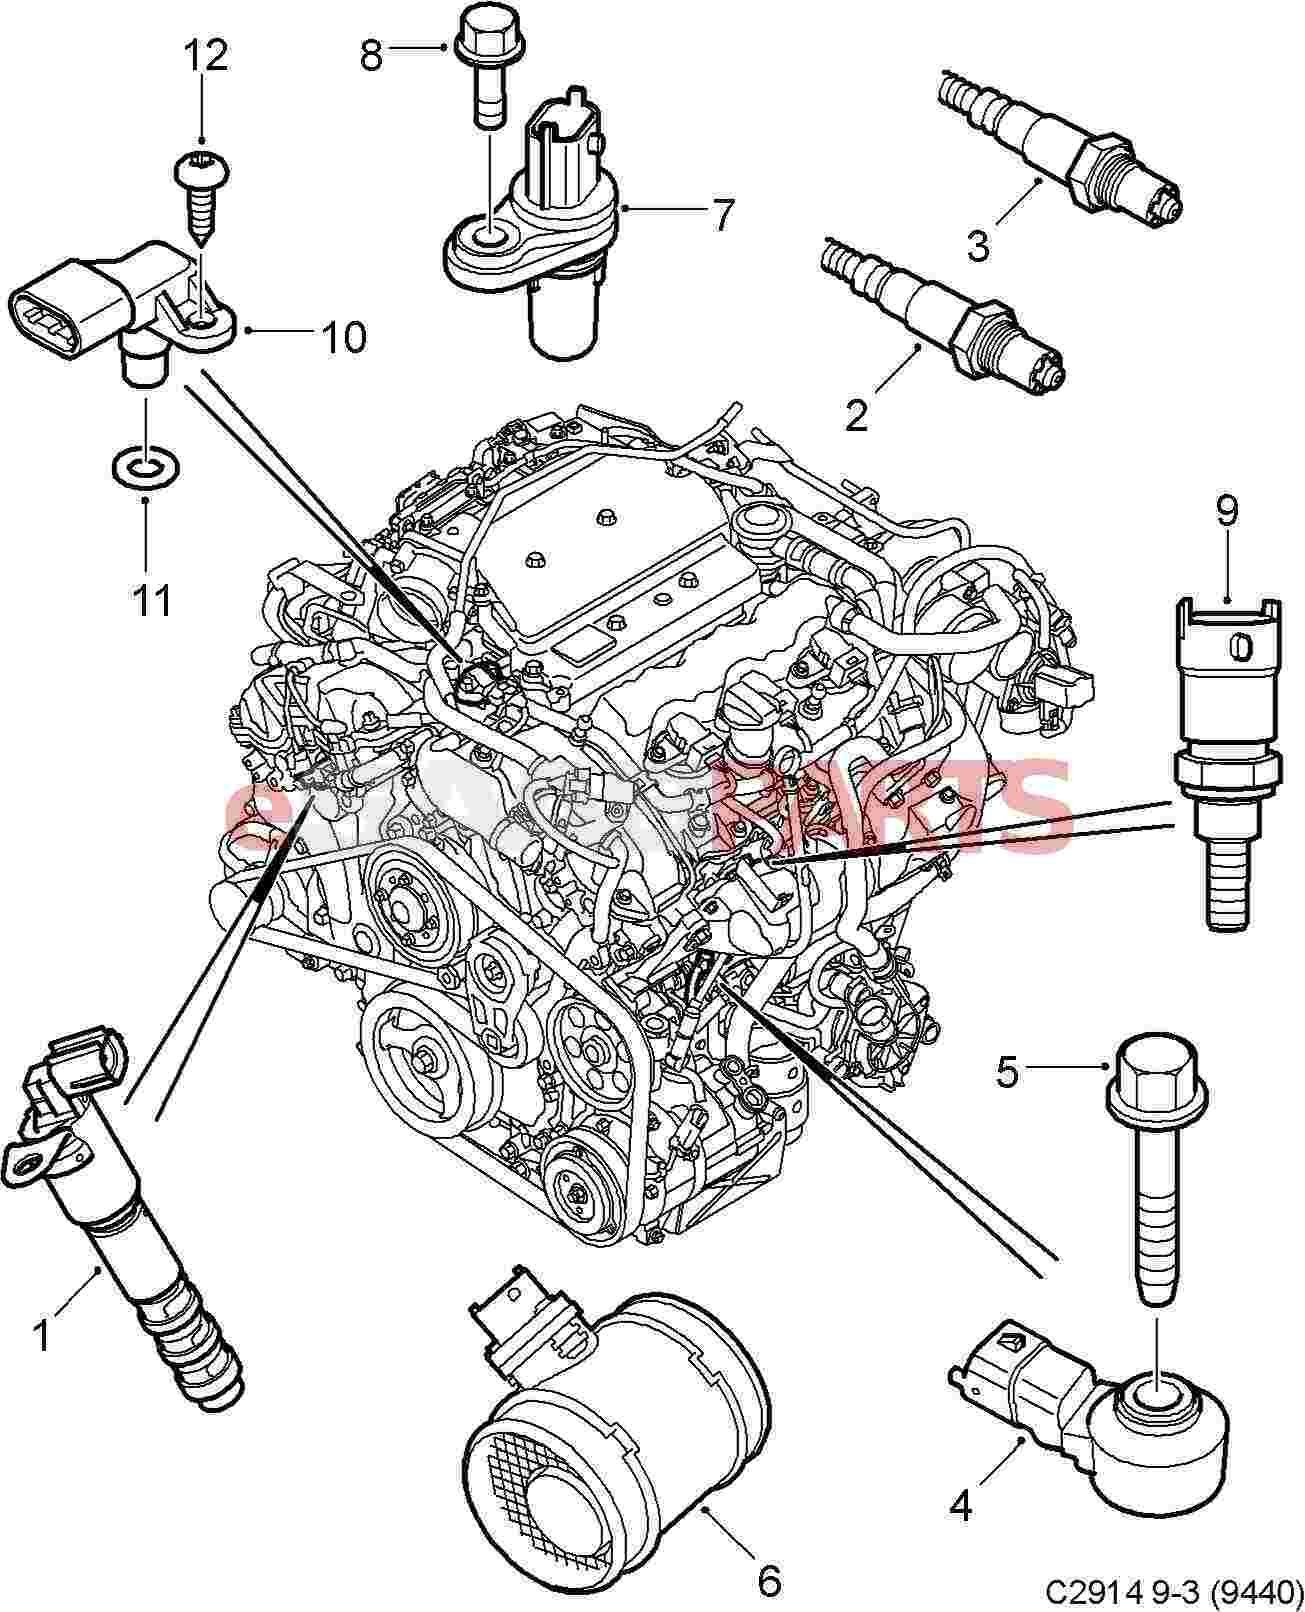 esaabparts com saab 9 3 9440 u003e electrical parts u003e engine sensors rh esaabparts com Saab 900 Engine Diagram saab engine diagrams